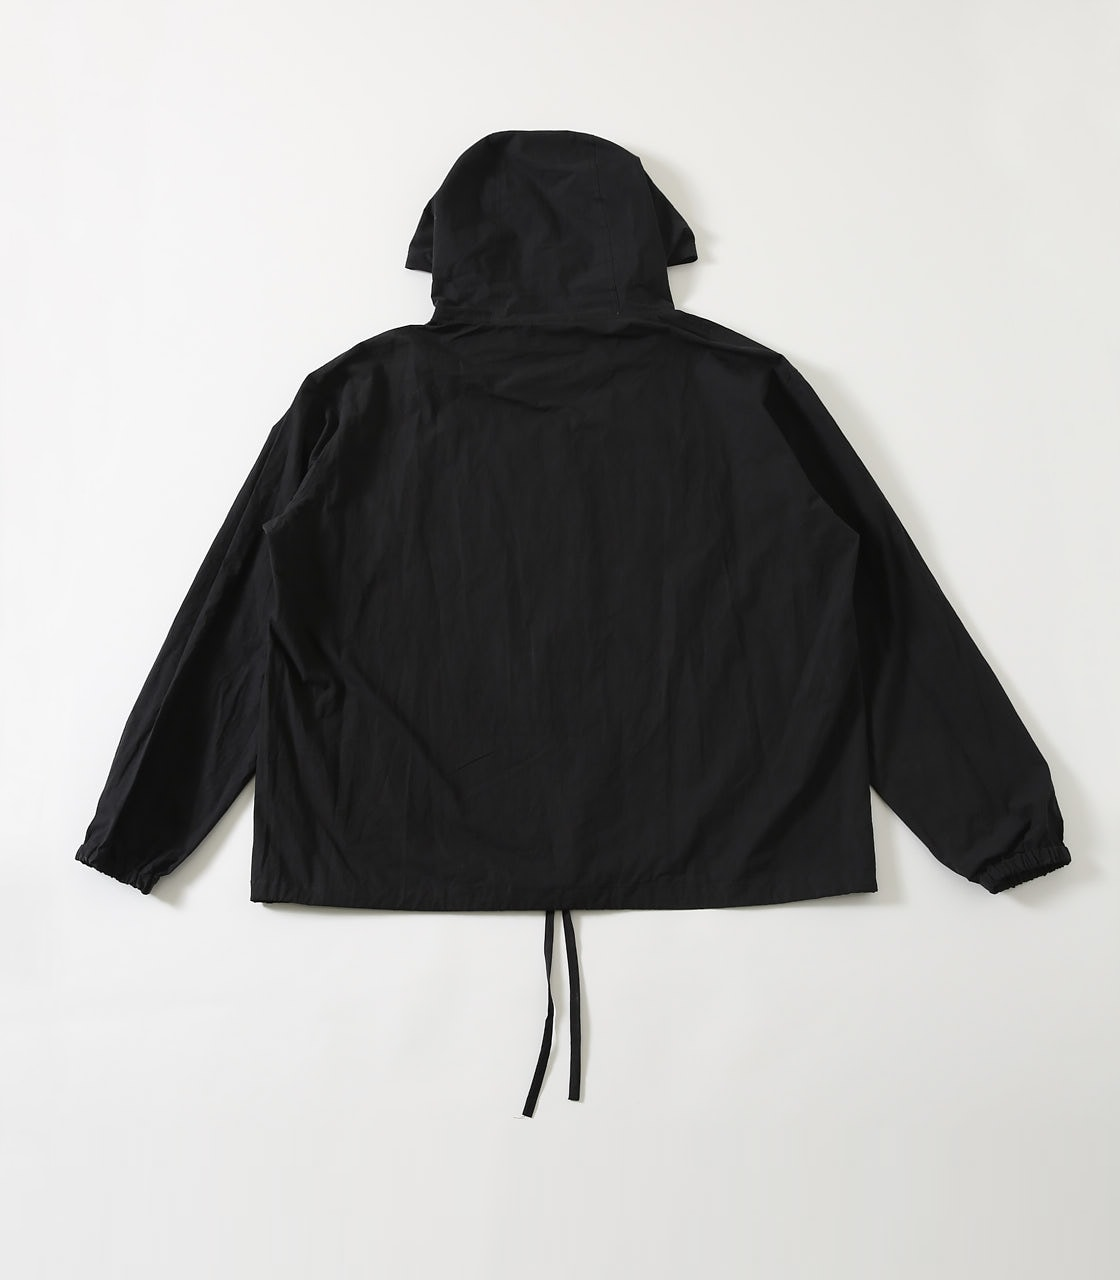 【AZUL BY MOUSSY】OVERSIZED COTTON ANORAK 詳細画像 BLK 2